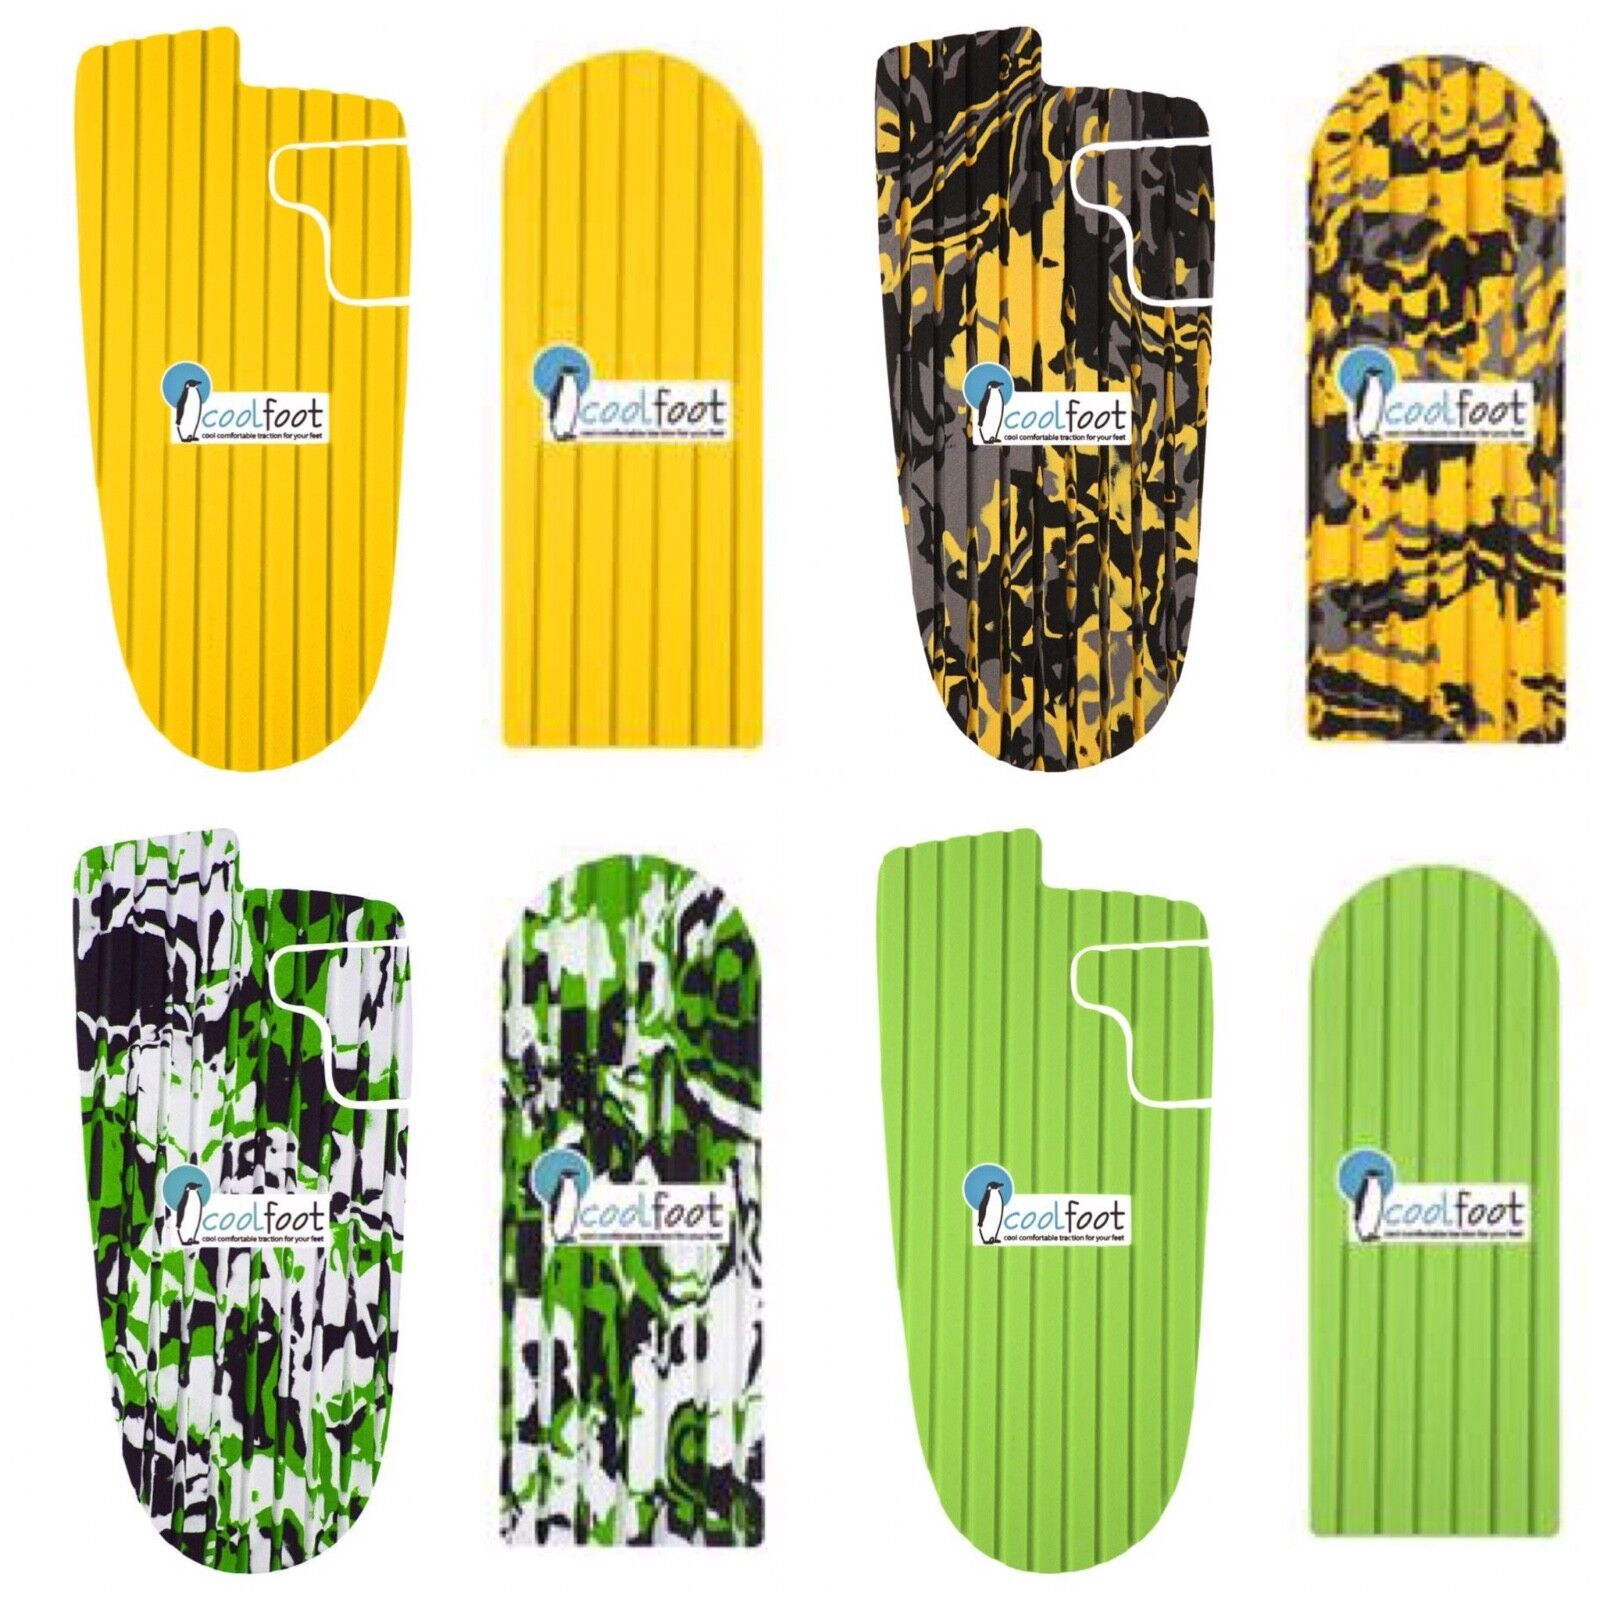 Motorguide Tour Edition coolfoot   Hotpad combo - 16 colors